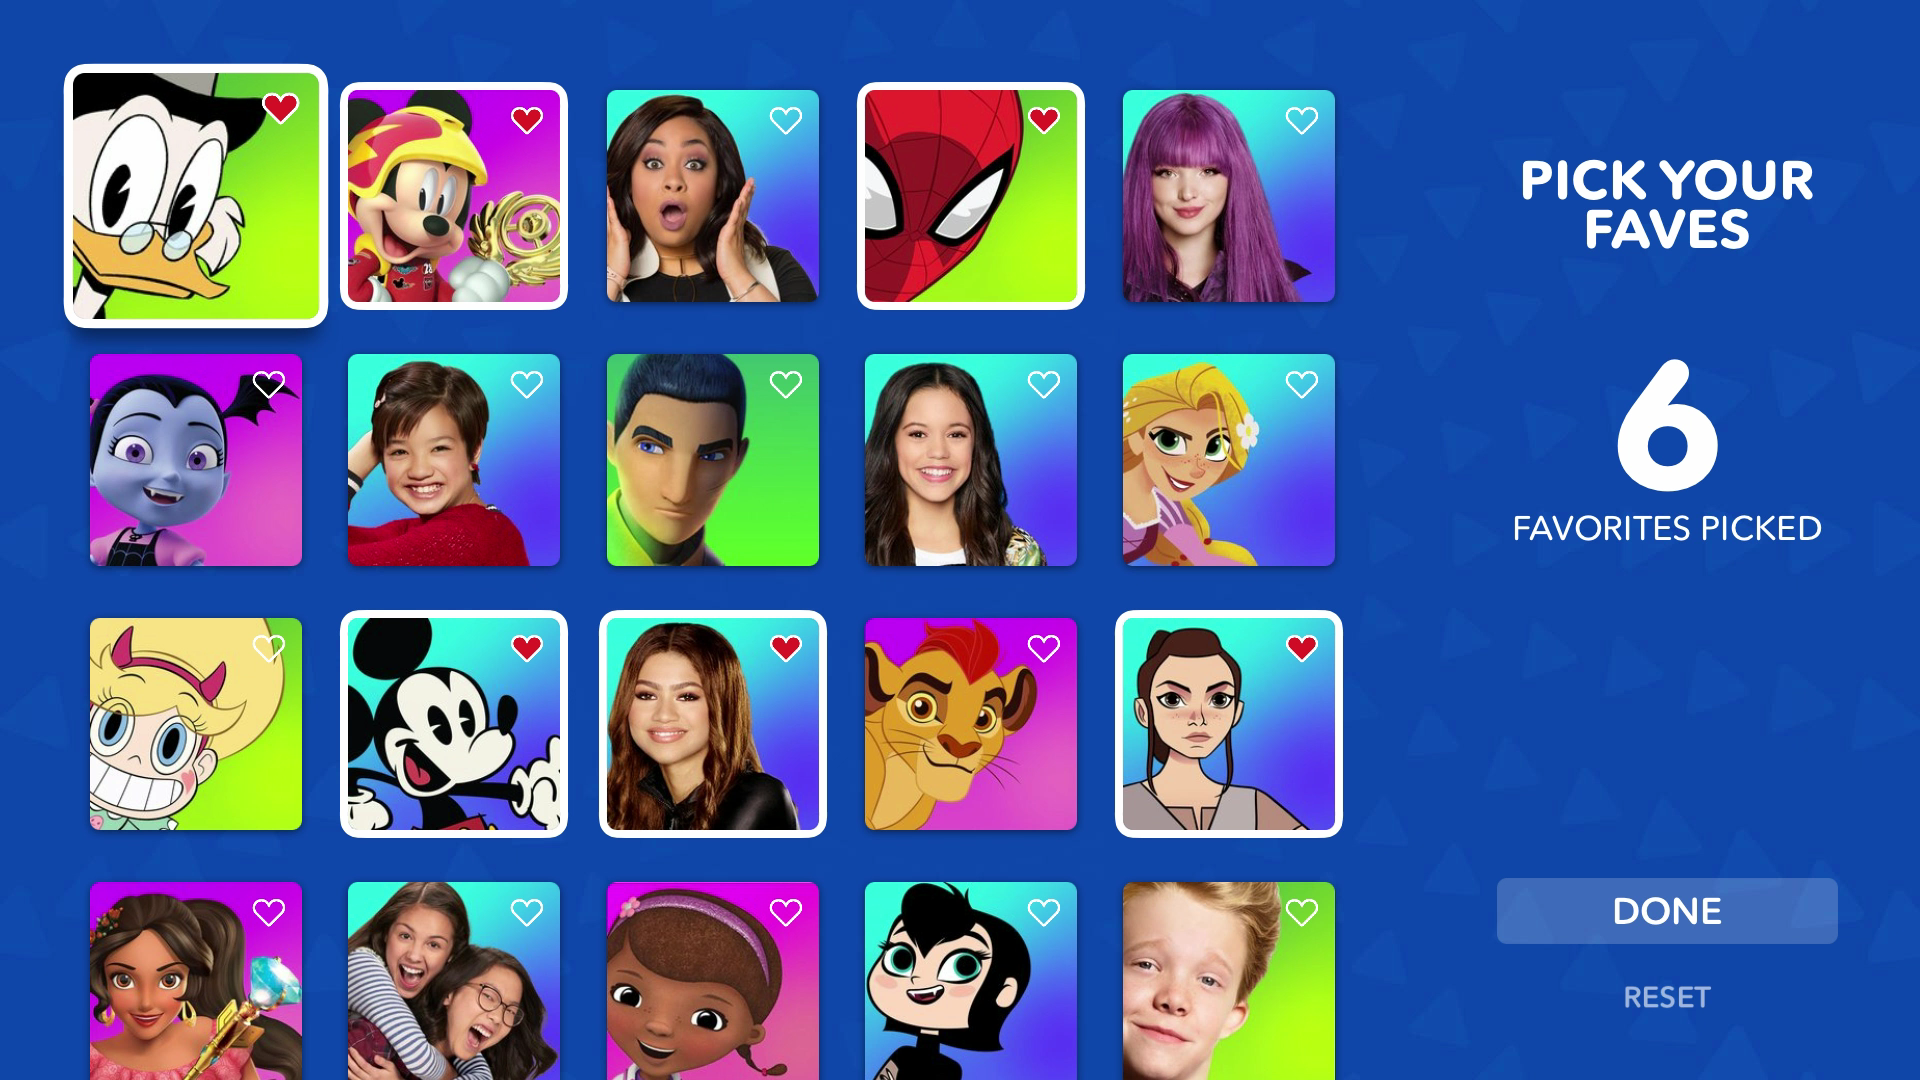 DisneyNOW – Episodes & Live TV screenshot 11